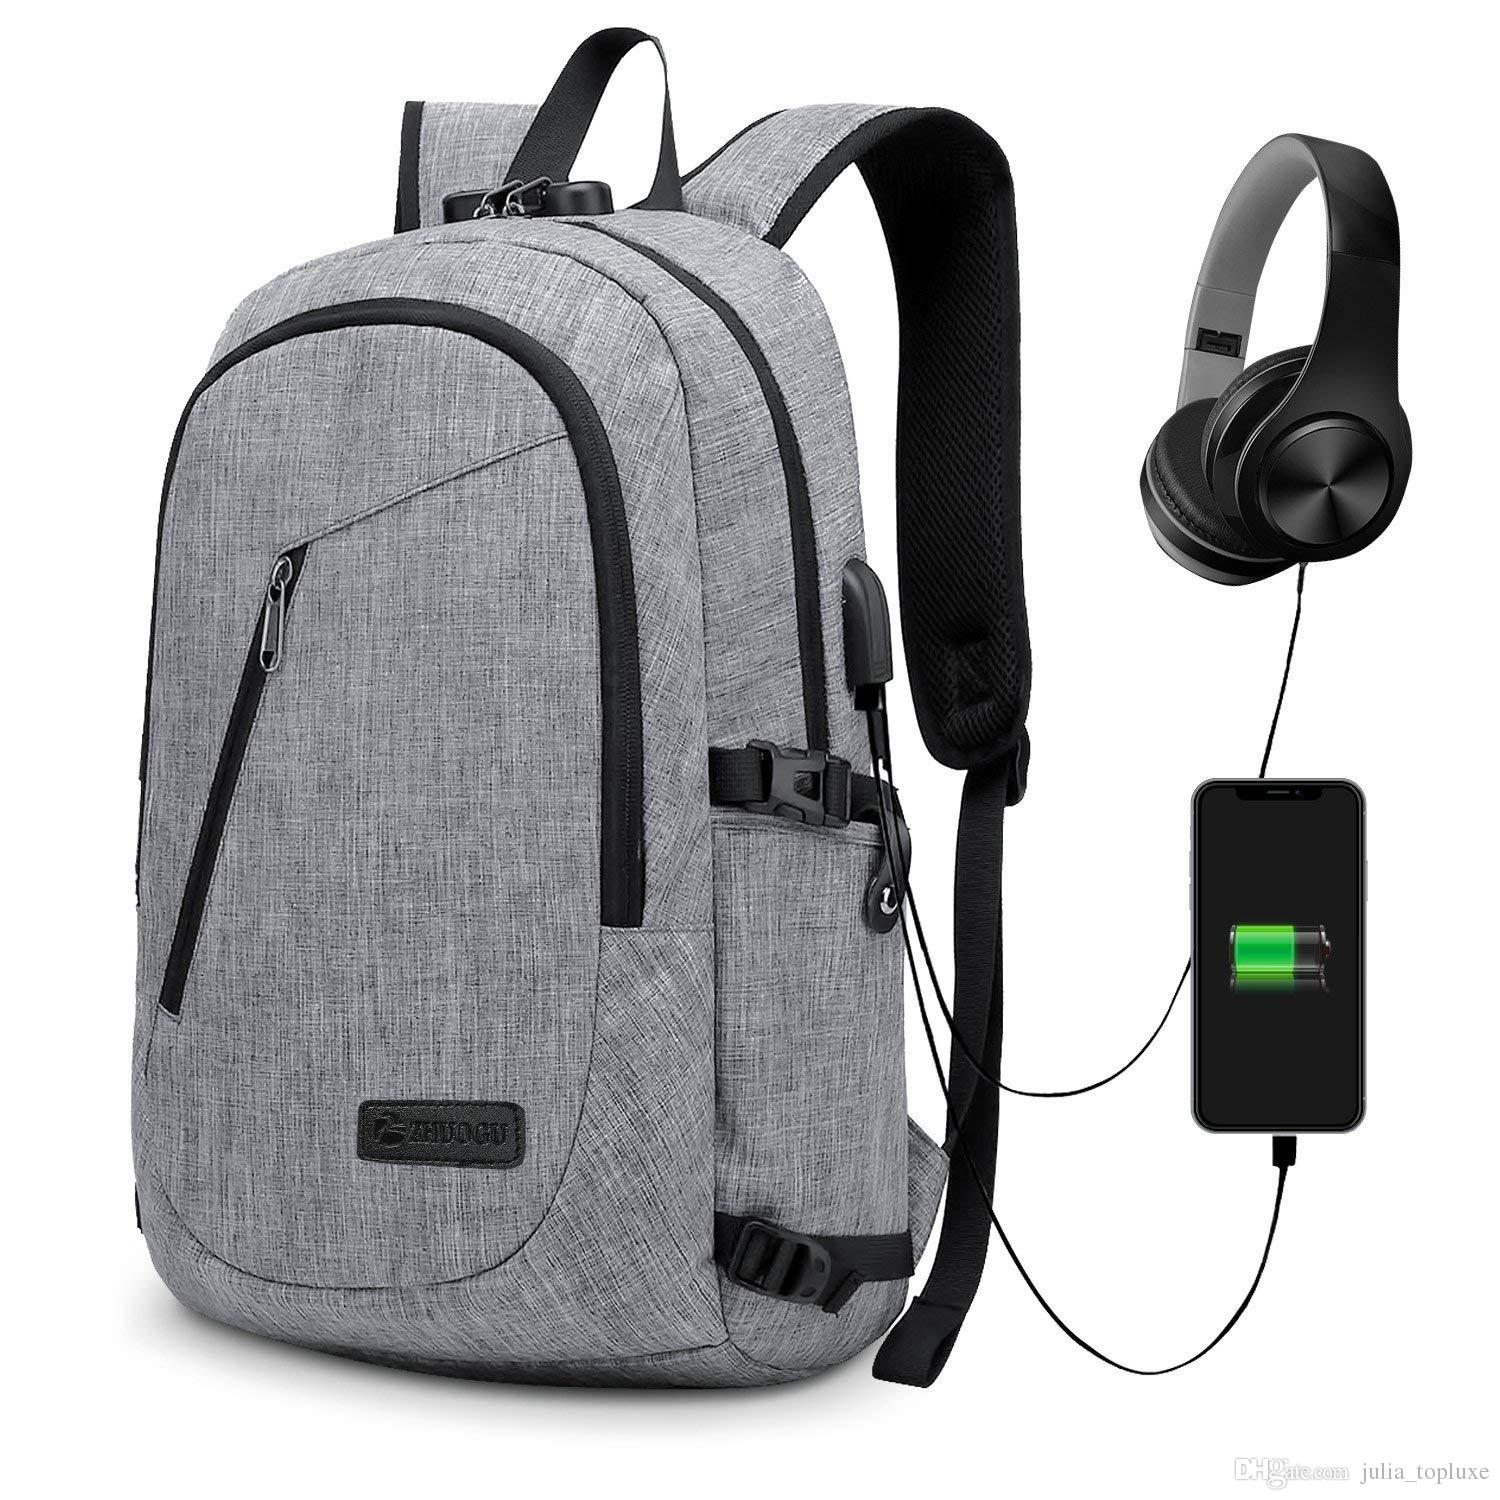 Anti Theft Backpack Theft Business Laptop Backpack With USB Charging Port  And Earphone Port With Lock Slim Water Resistant Bag Daypack Cool Backpacks  ... e41161ac508b1